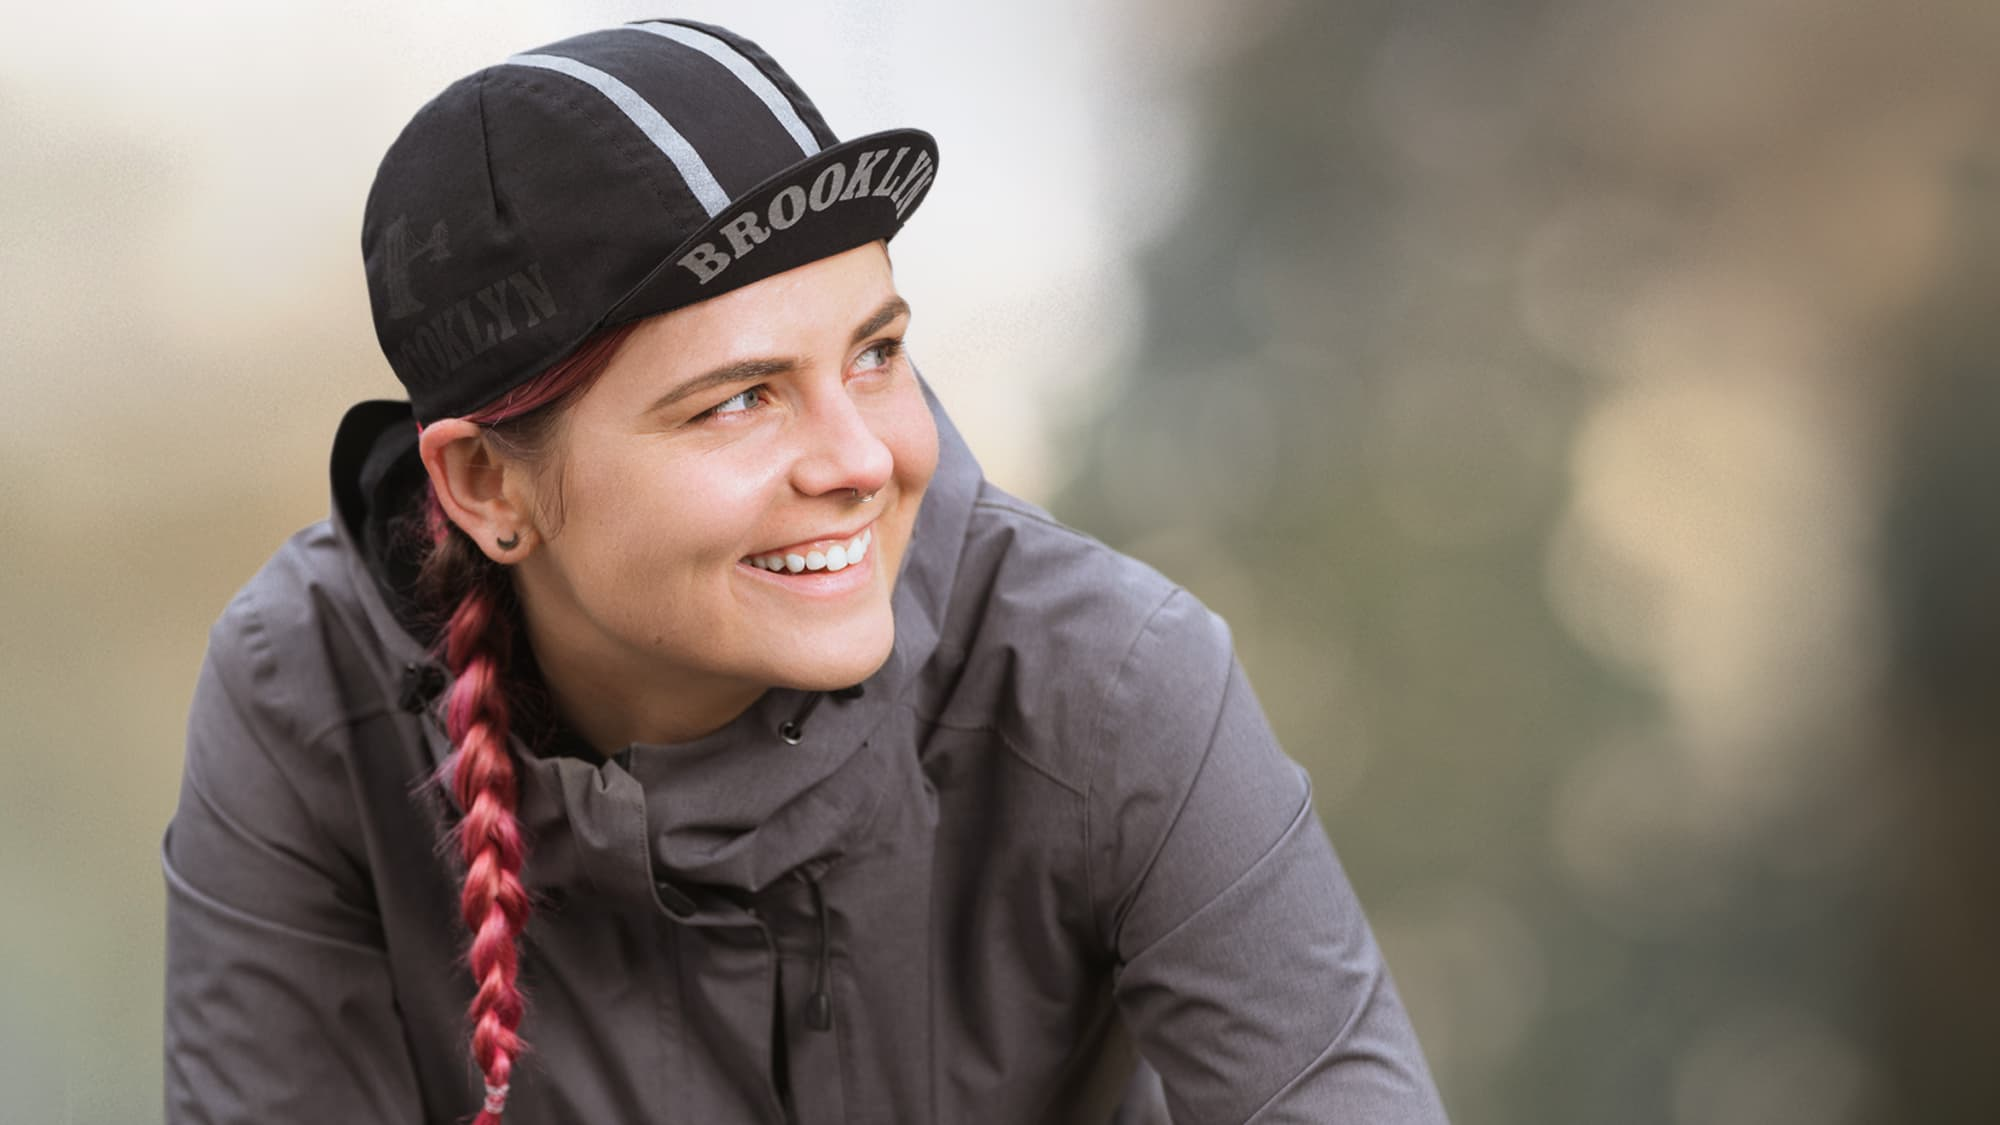 cycling cap on a woman bicyclist